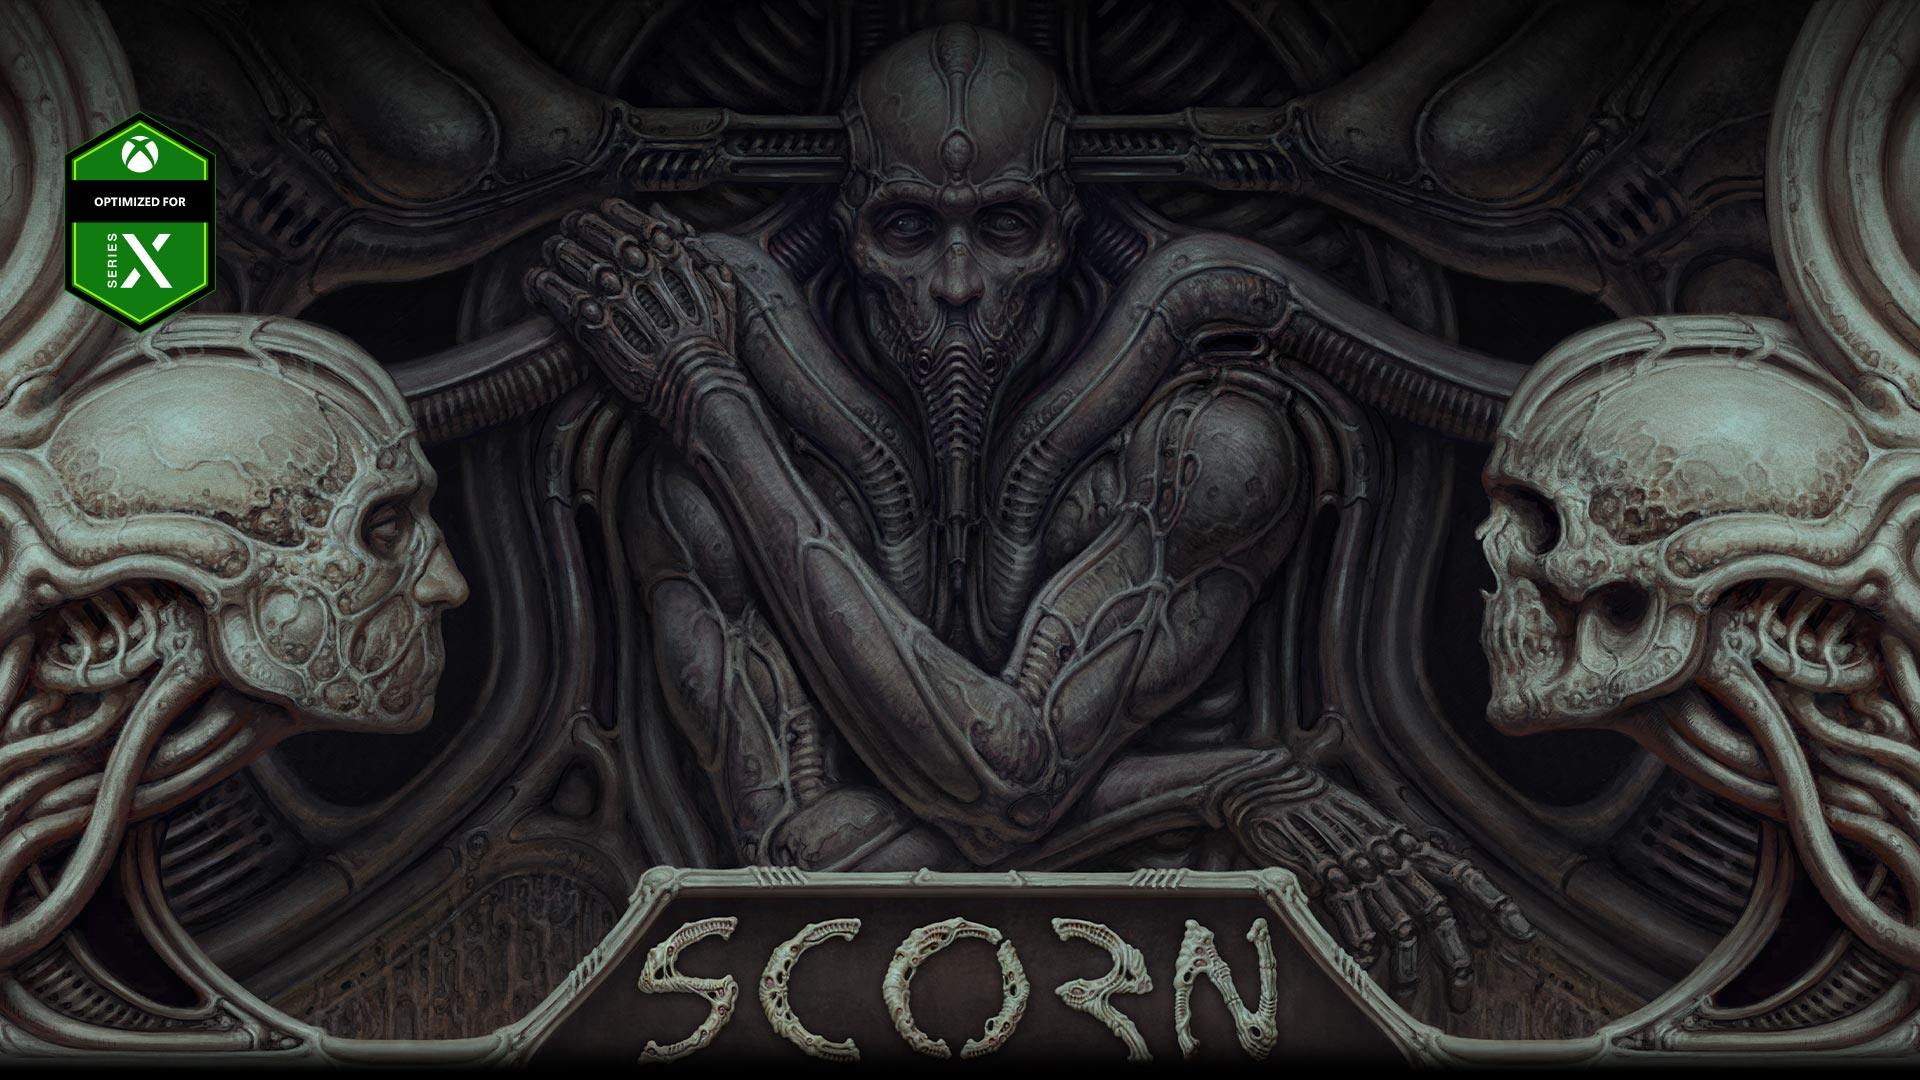 Character from Scorn embedded in a wall with two skulls heads.